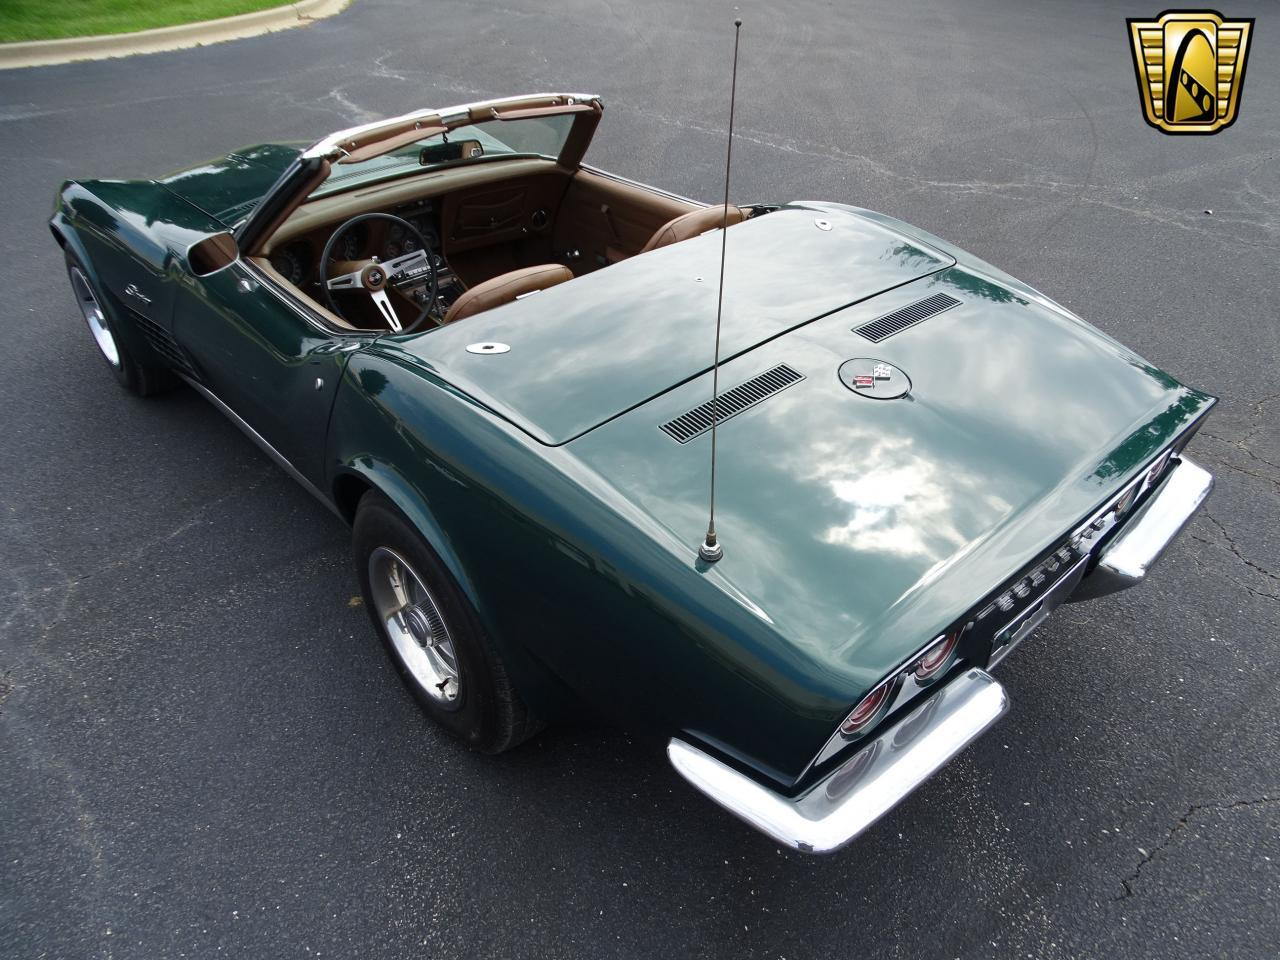 Large Picture of 1971 Chevrolet Corvette located in Illinois - $29,595.00 Offered by Gateway Classic Cars - St. Louis - LWIG